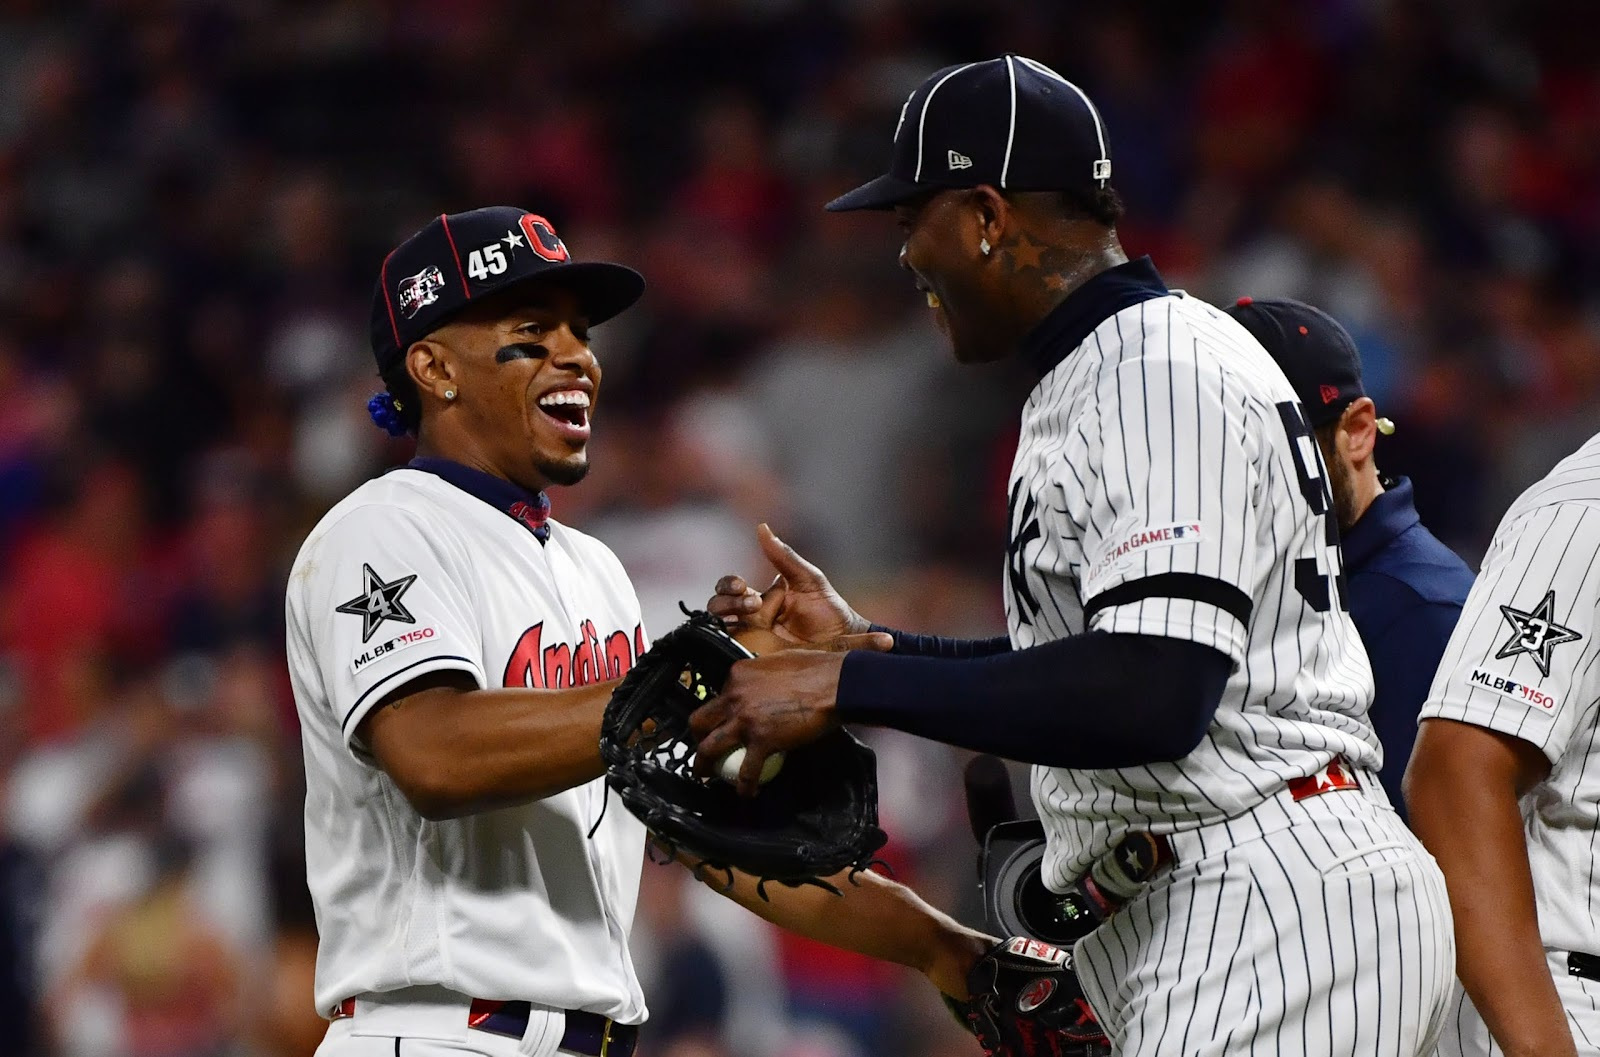 Aroldis Chapman of the Yankees shakes hands with Francisco Lindor of the Indians after the American League won the All-Star Game.